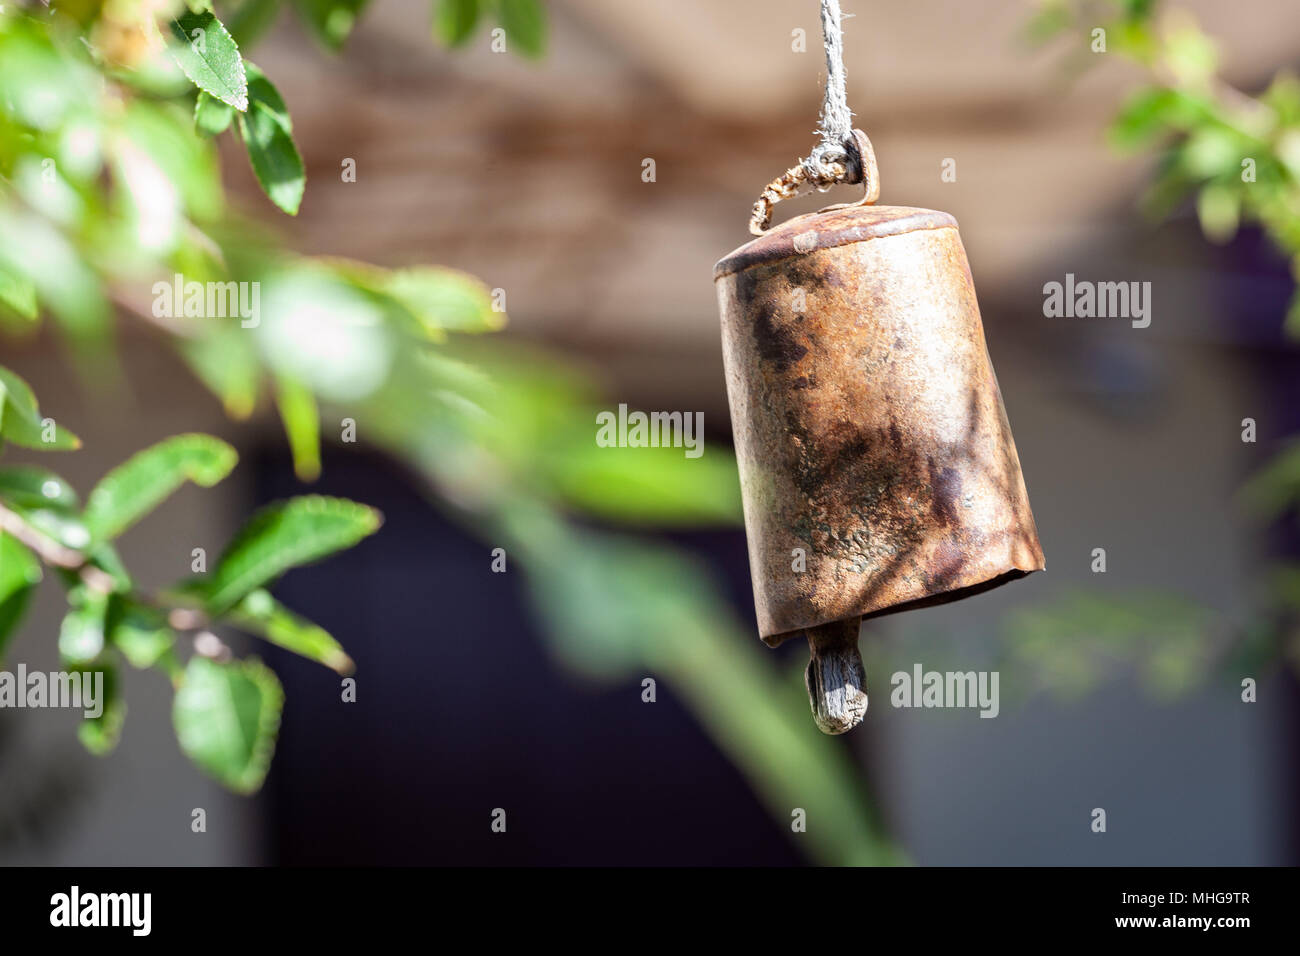 Ritual bell hanging on blurred background - Stock Image